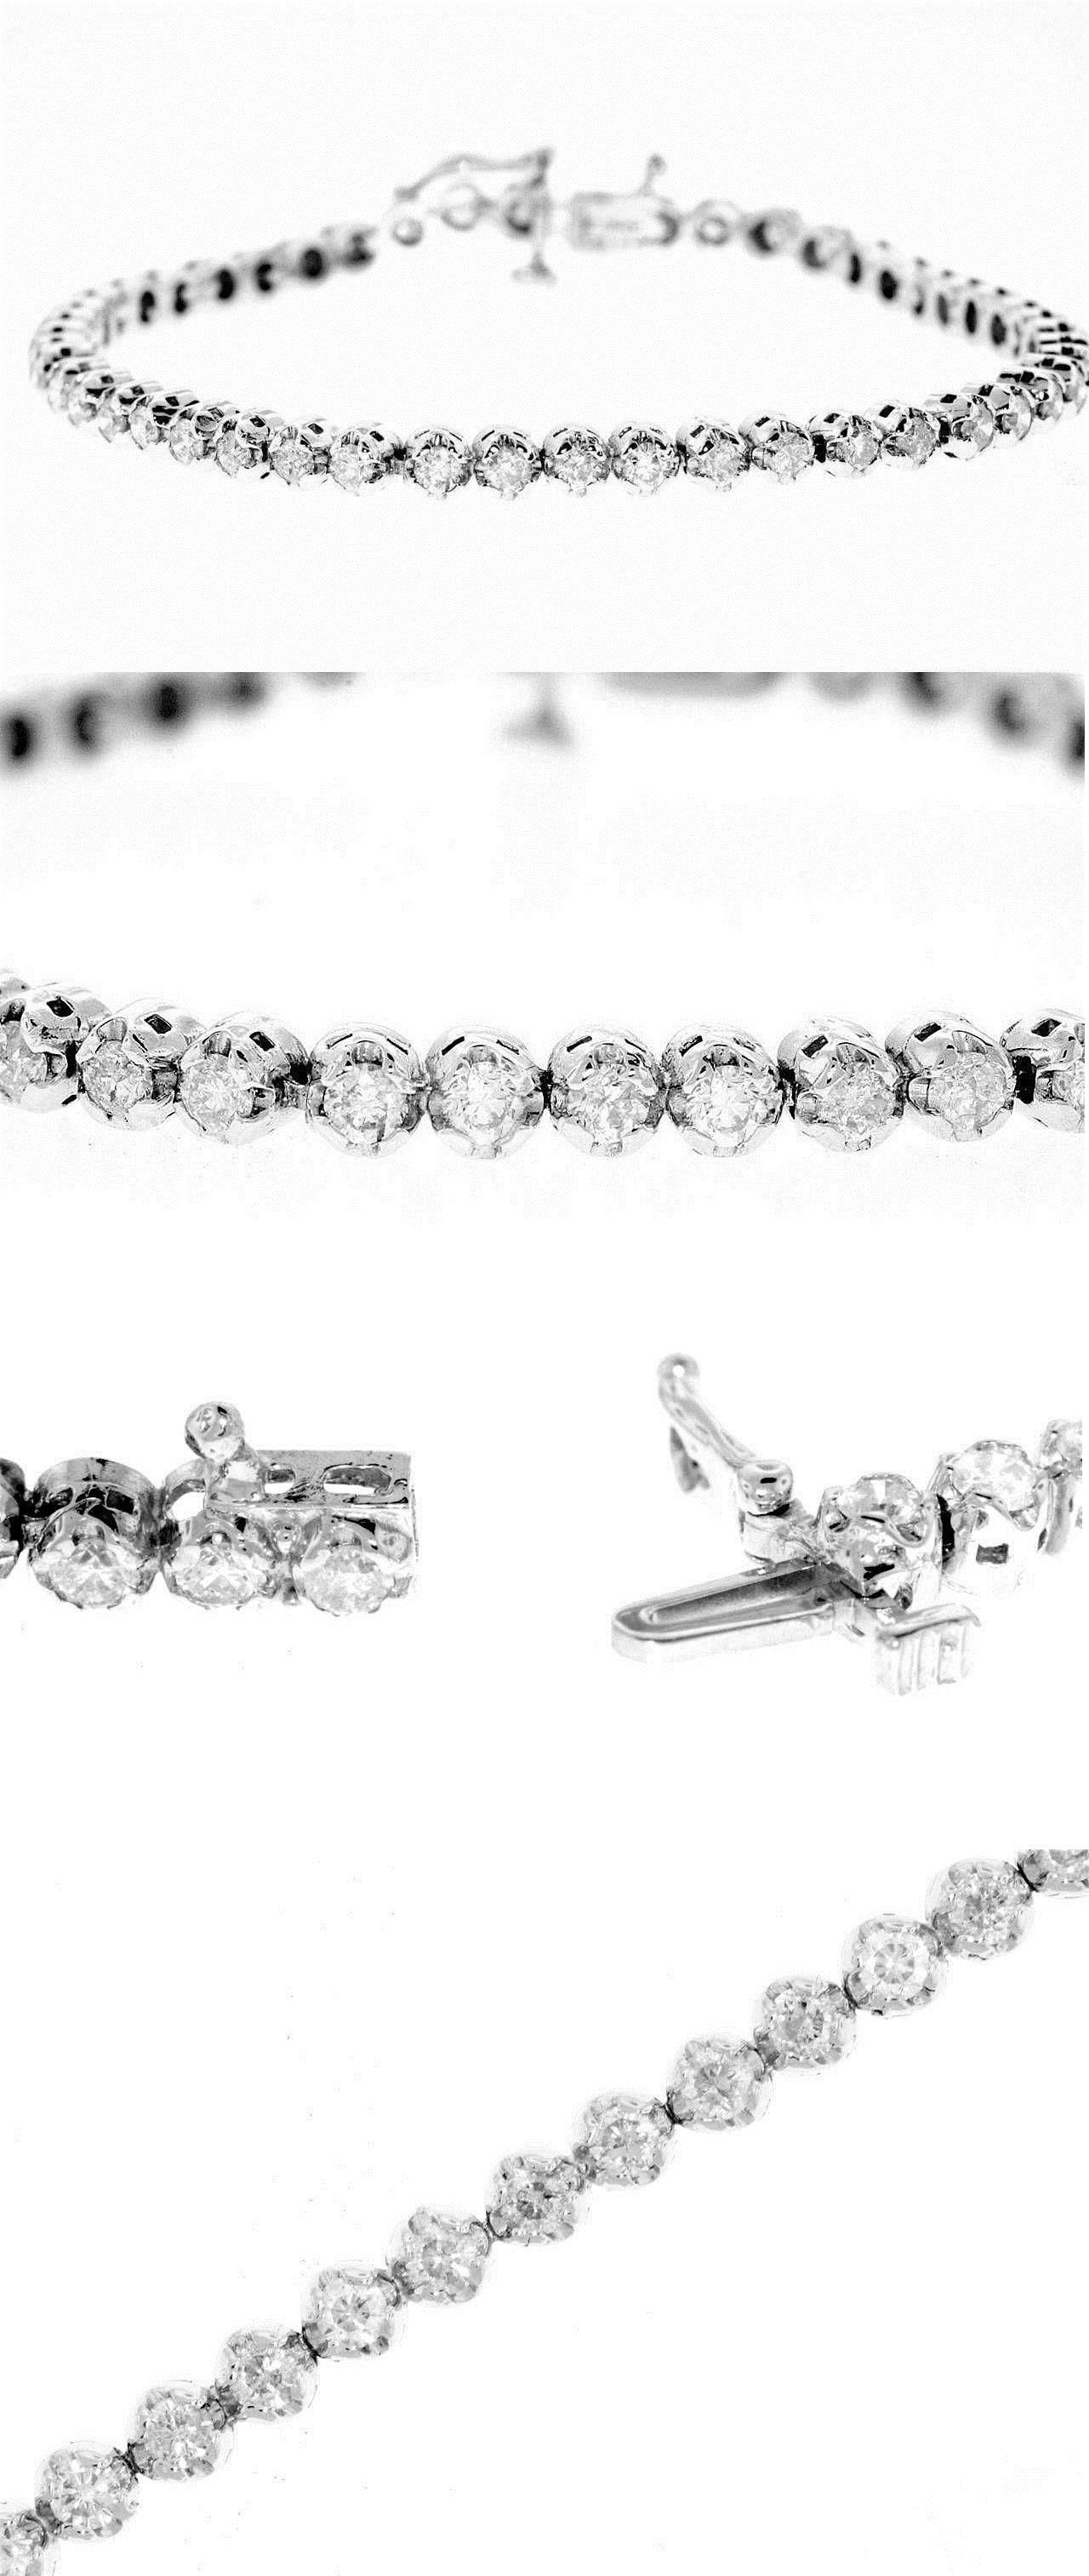 it com diamond bracelet chanel upg charm set with tattoo blog anklet ankle